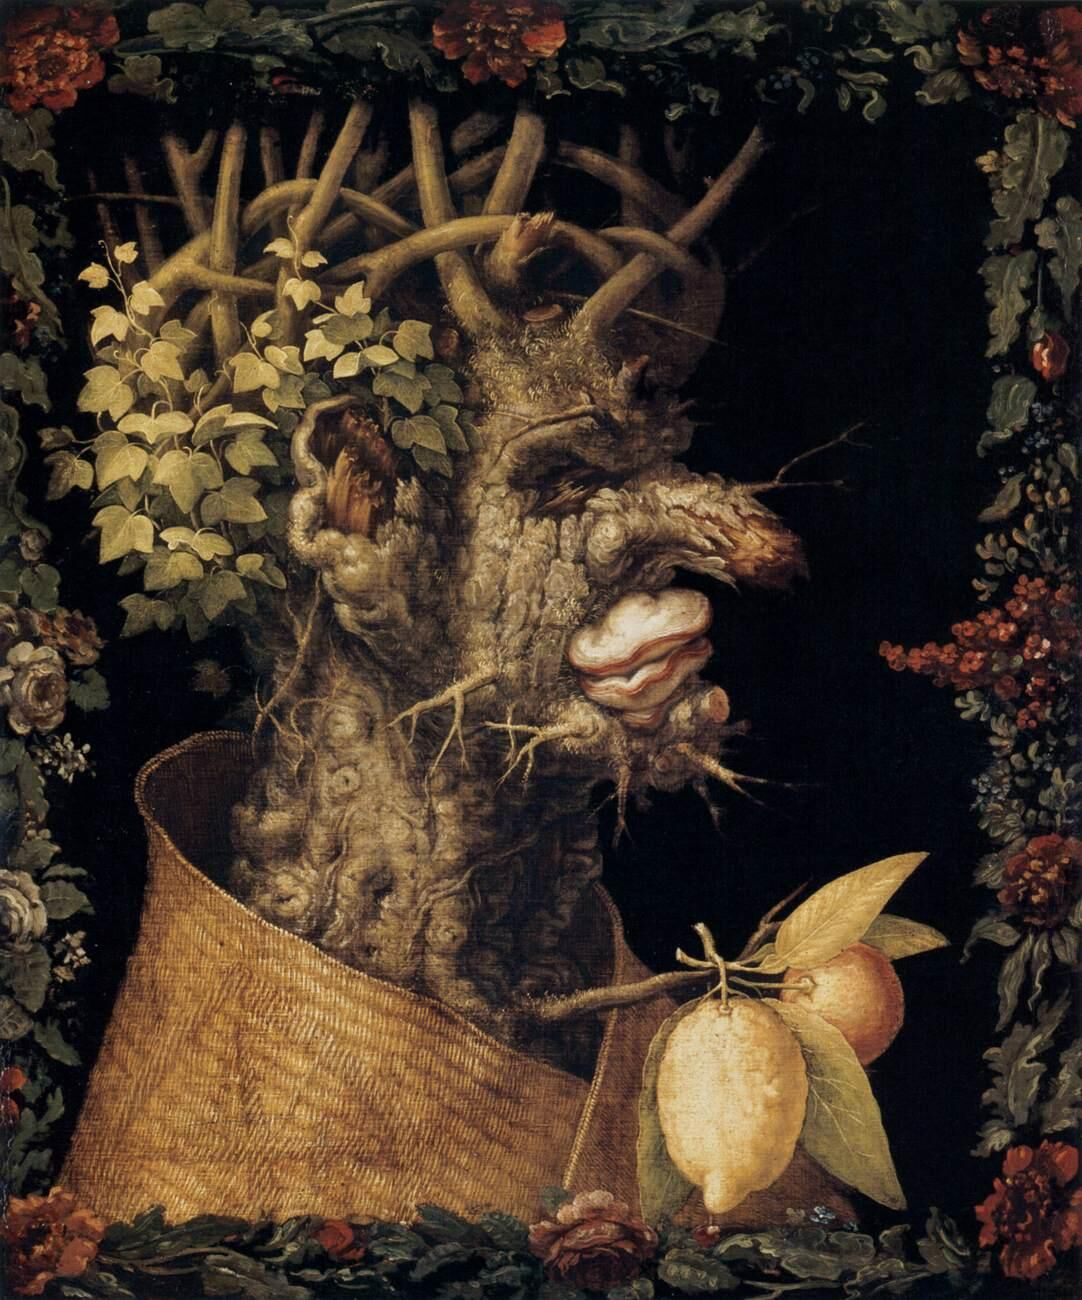 Giuseppe Arcimboldo, Winter, 1573. Photo via Wikimedia Commons.